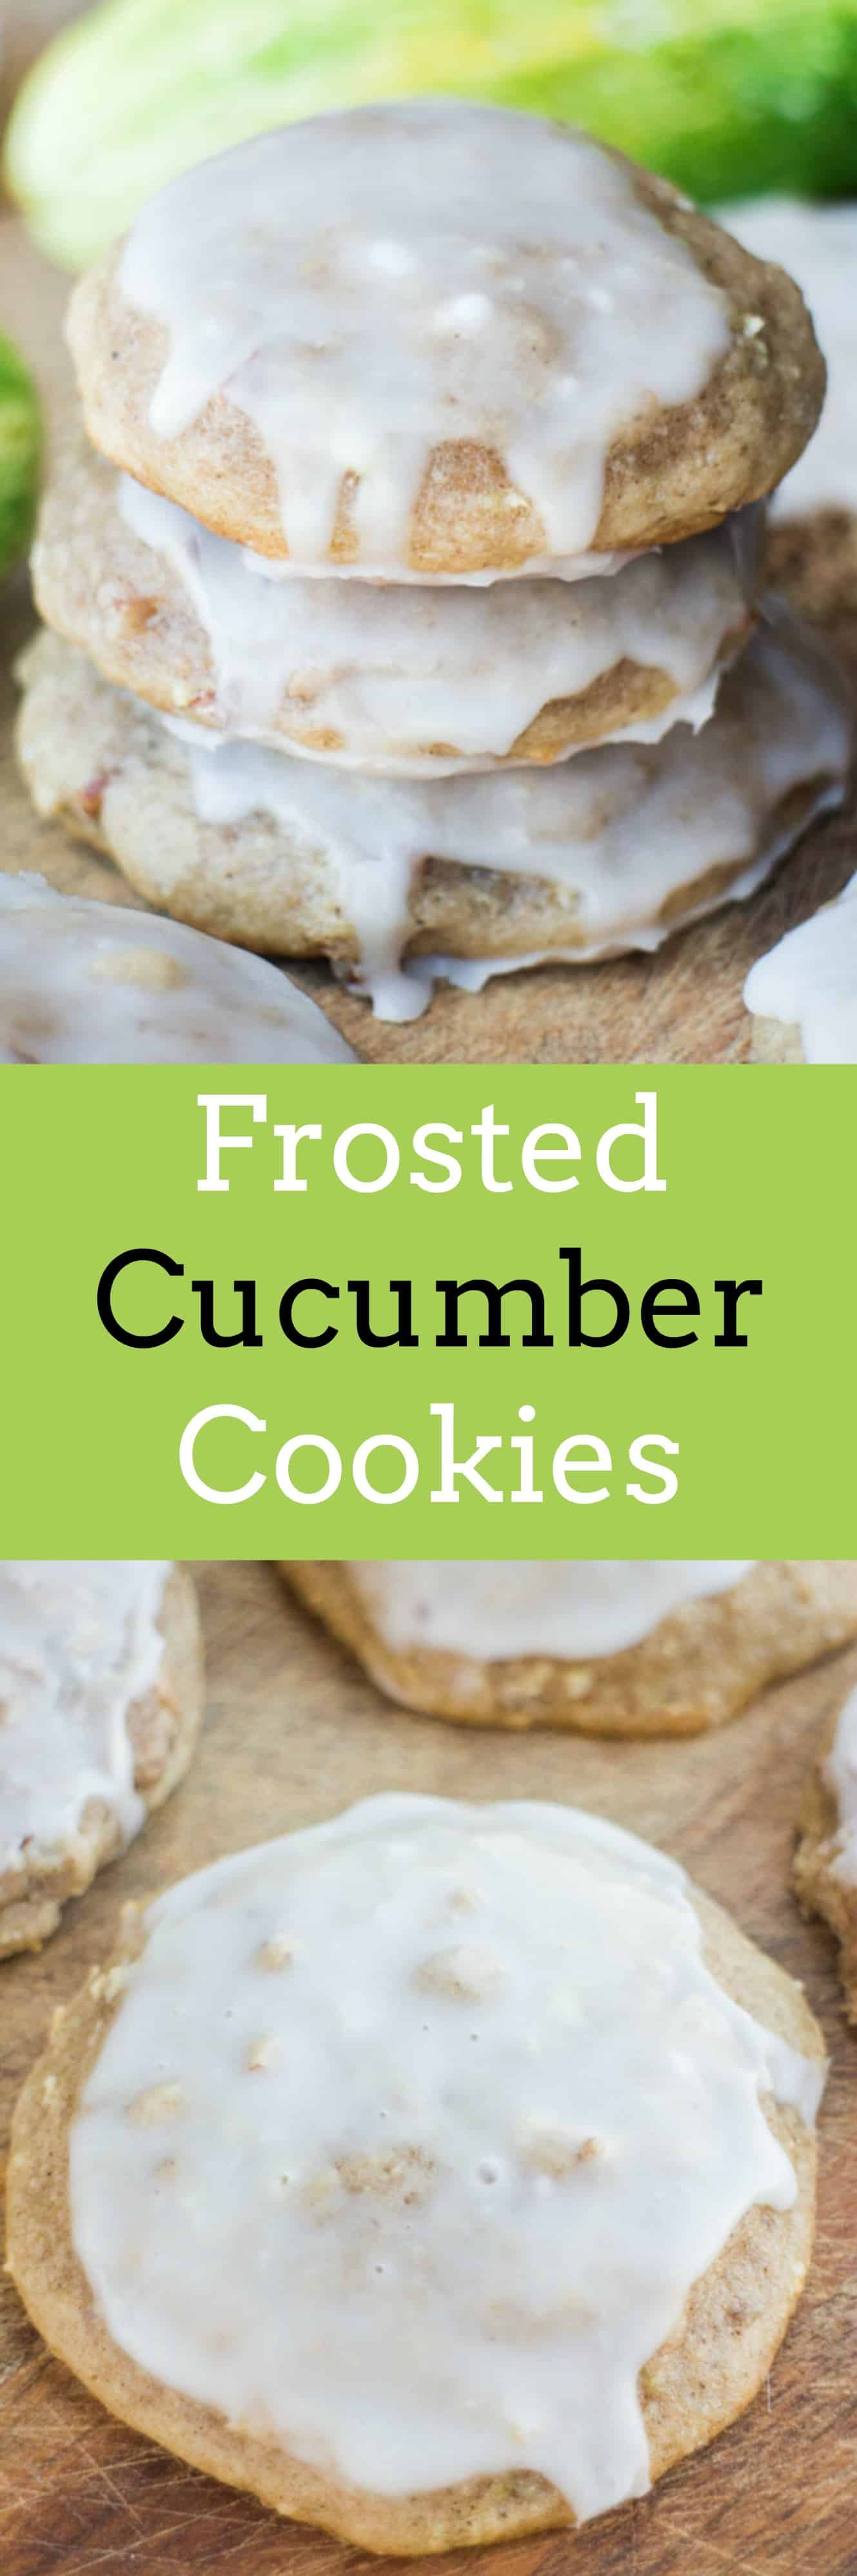 Frosted Cucumber Cookies Brooklyn Farm Girl